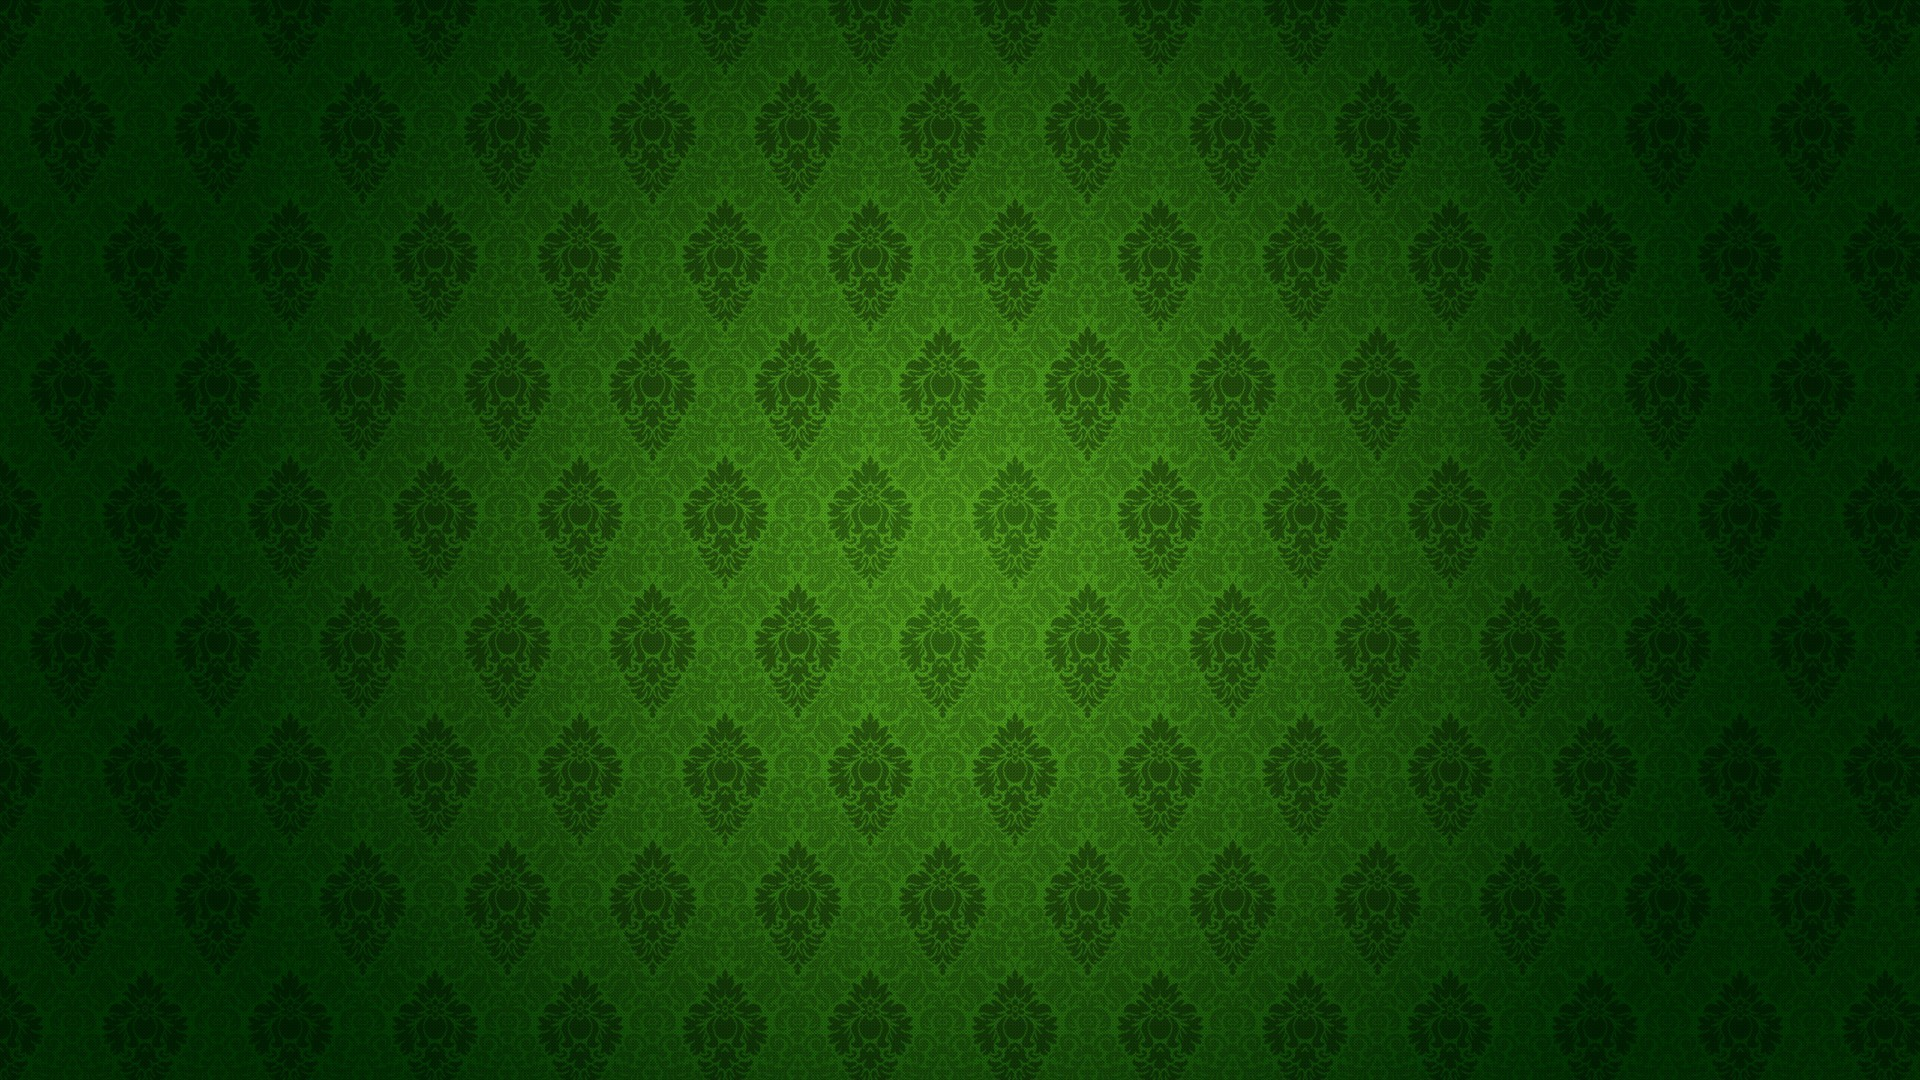 1920x1080 dark green pattern background